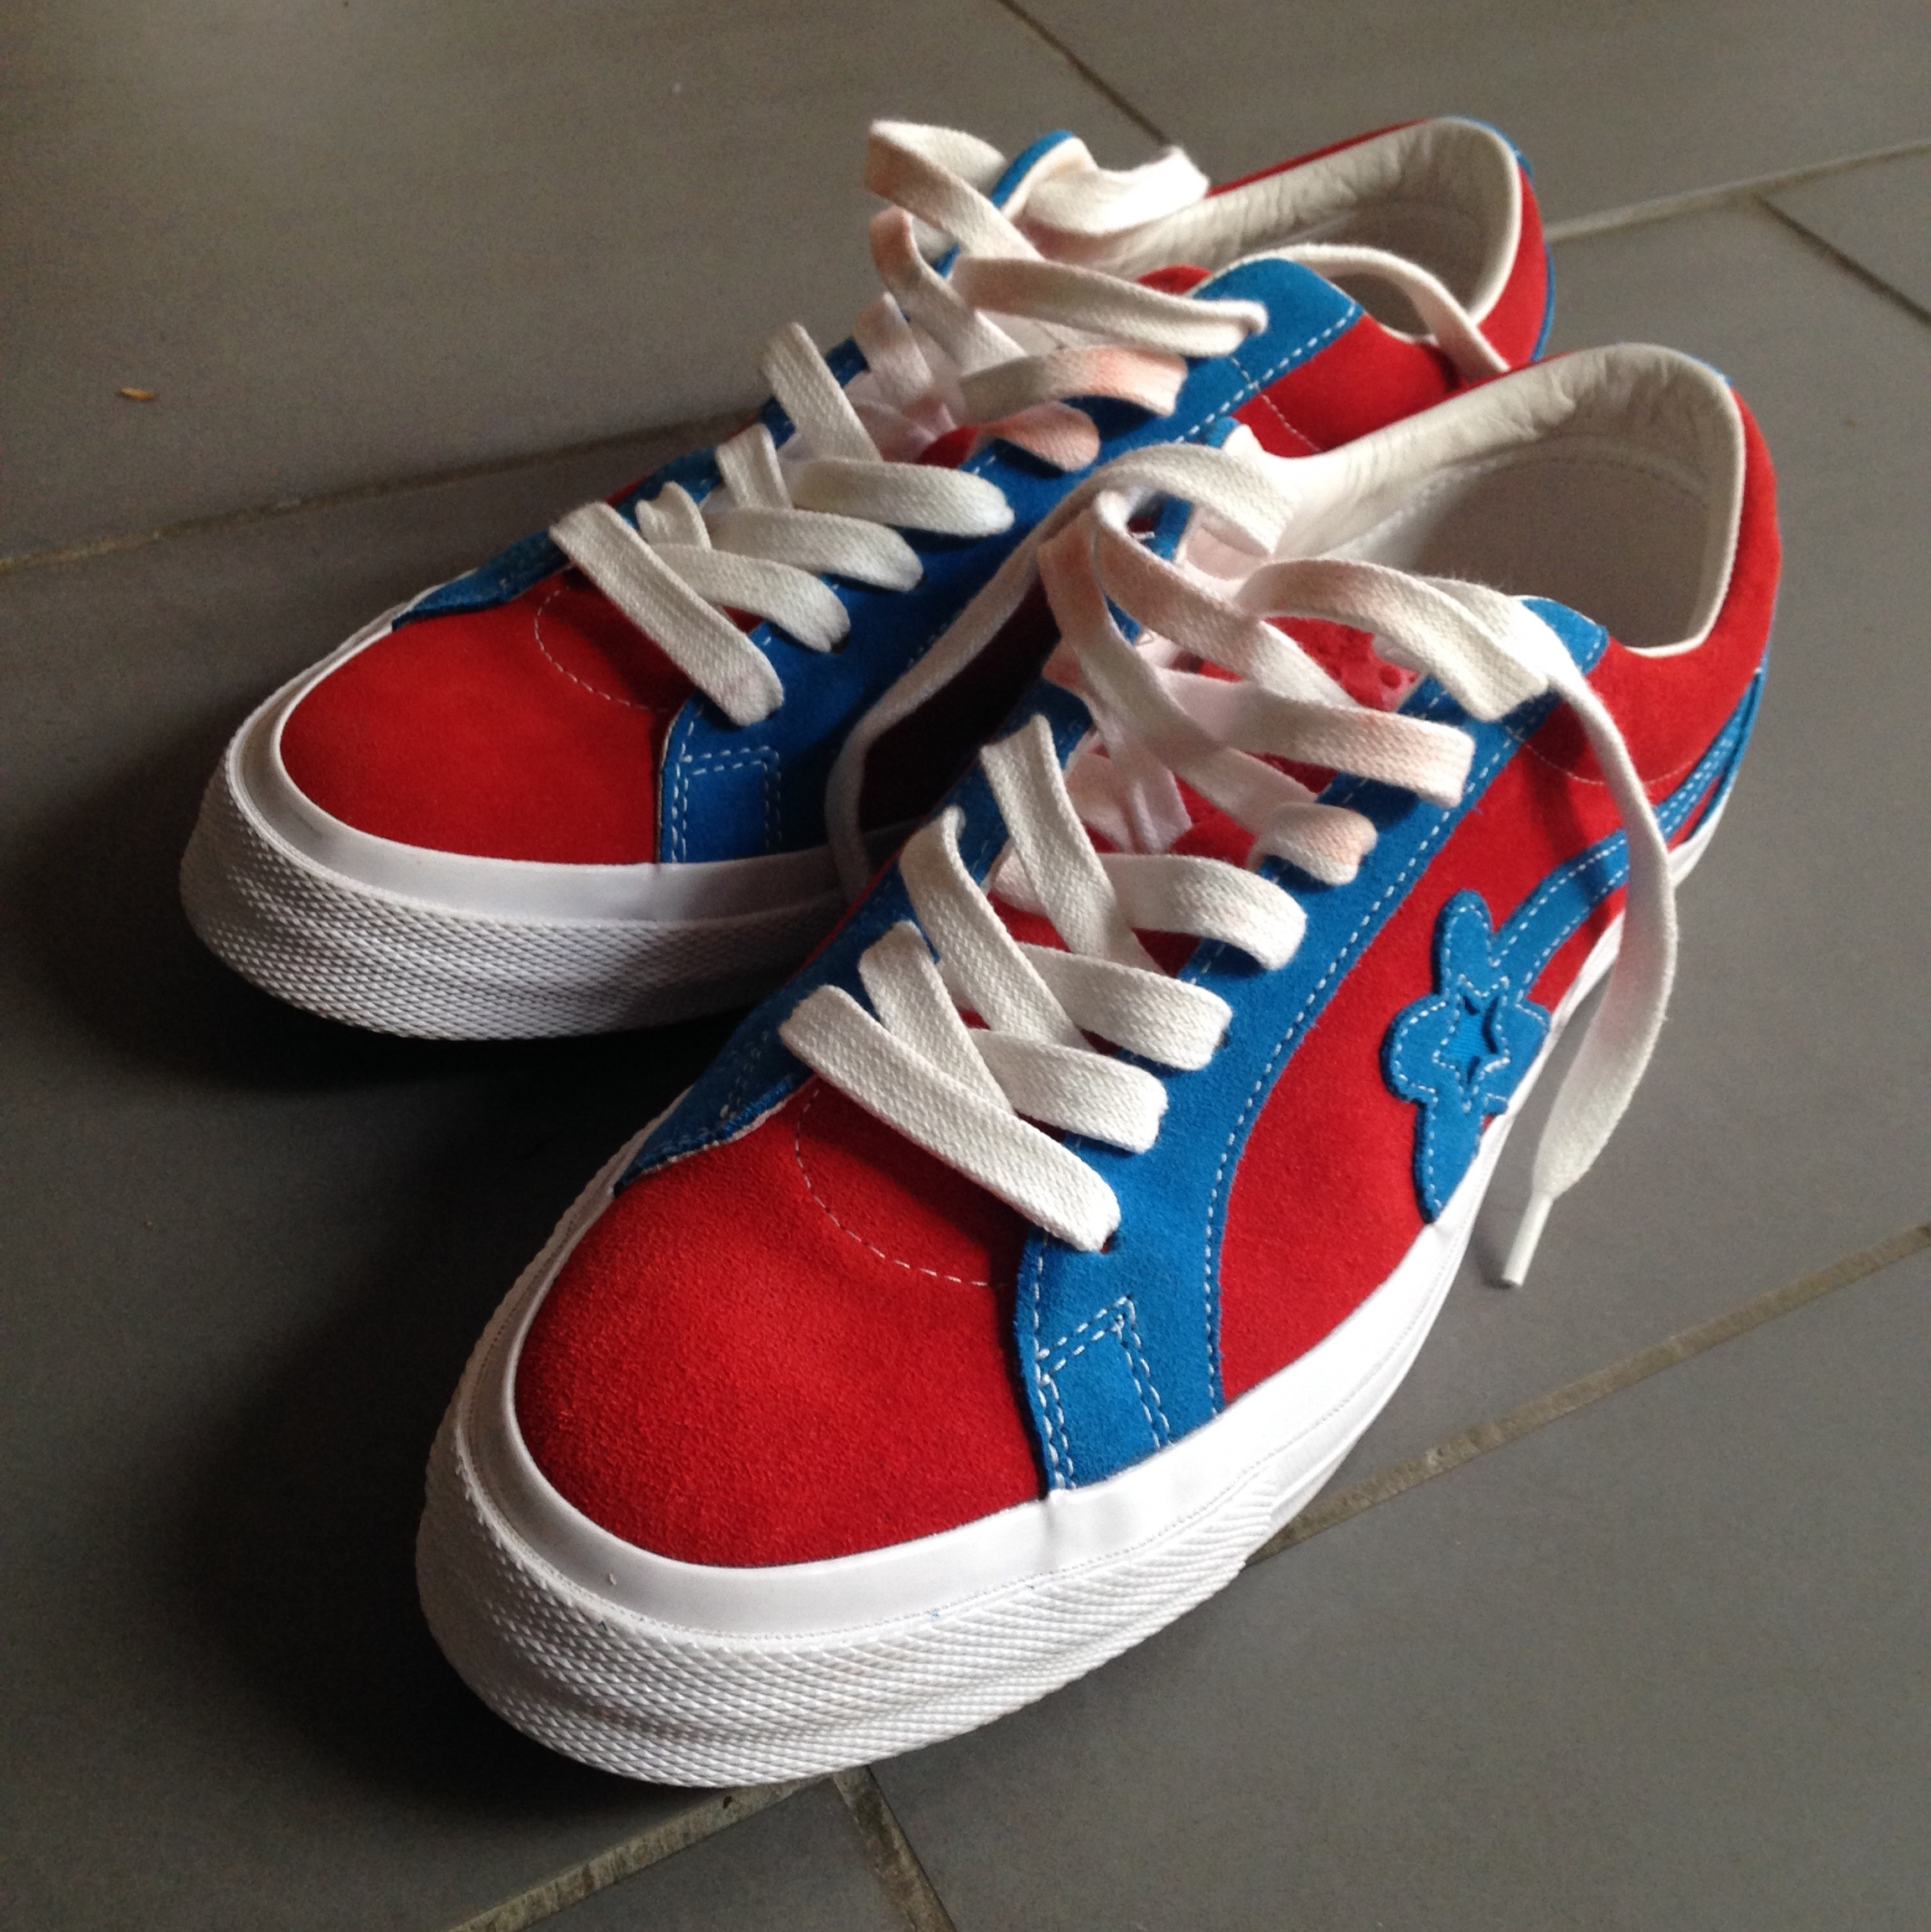 Golf le Fleur converse - red and blue